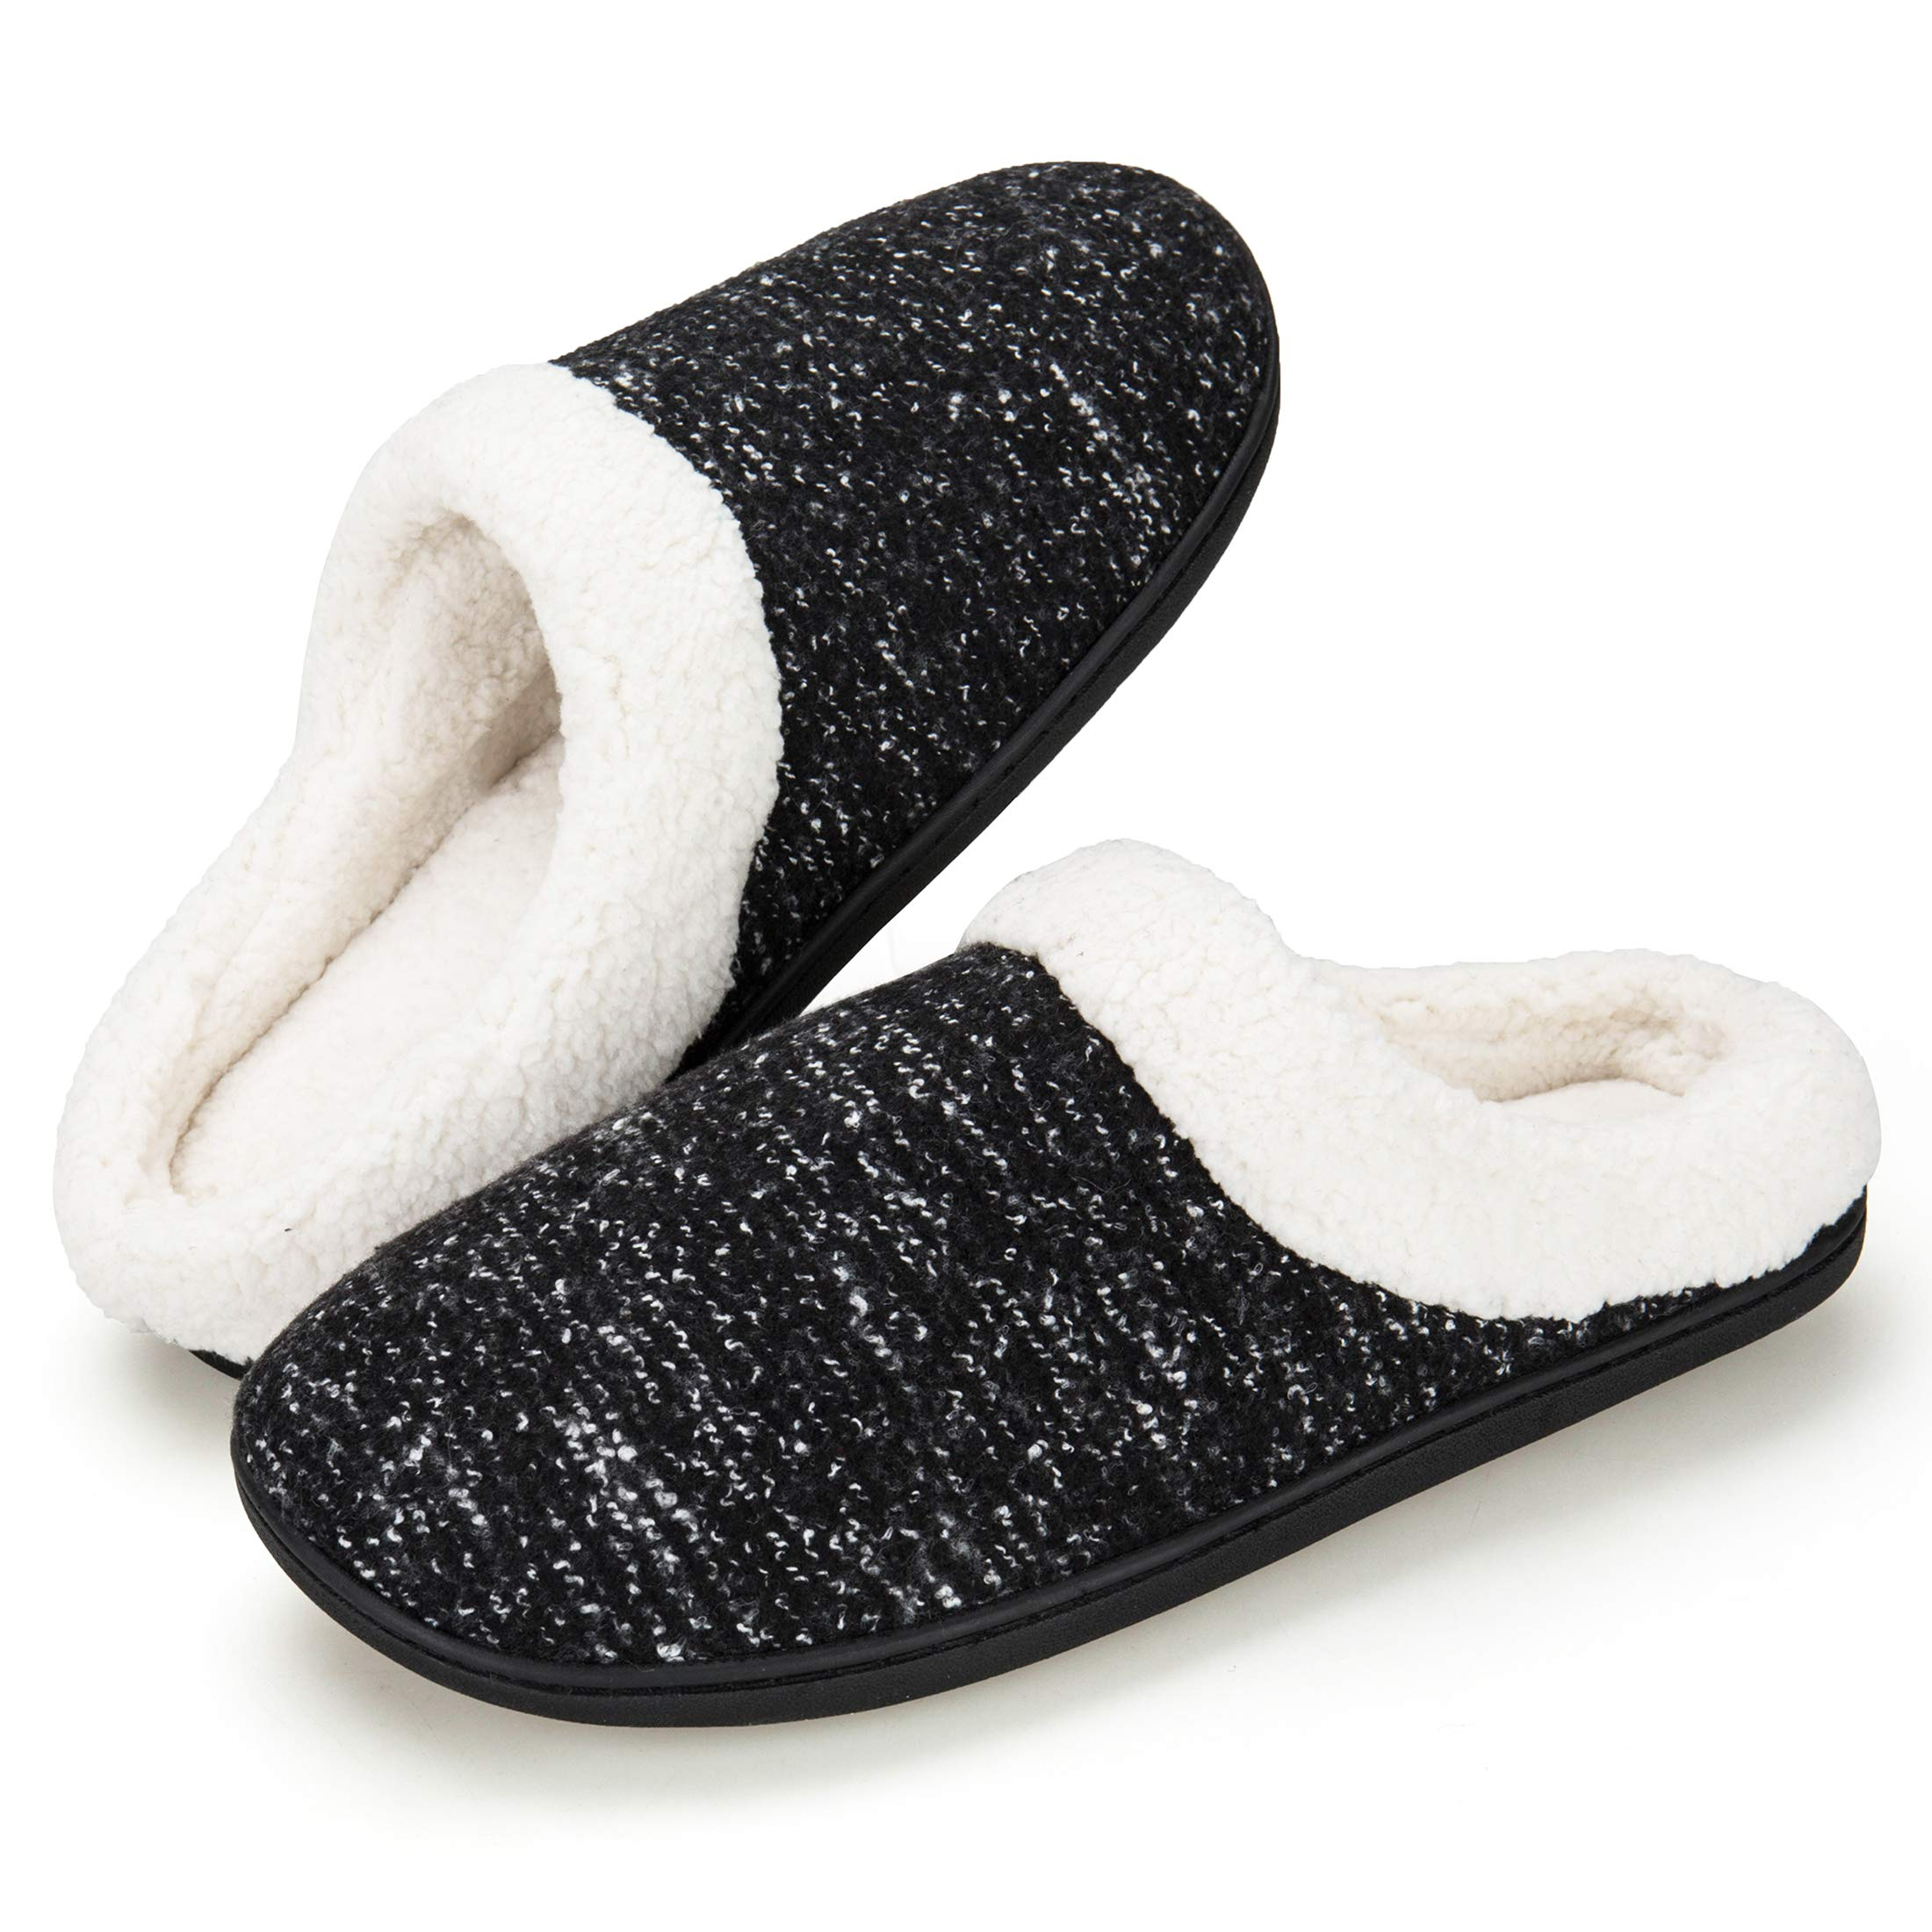 EAST LANDER Men's Memory Foam House Slippers Washable Anti-Slip Slippers Indoor Shoes ELMT001-M1-L